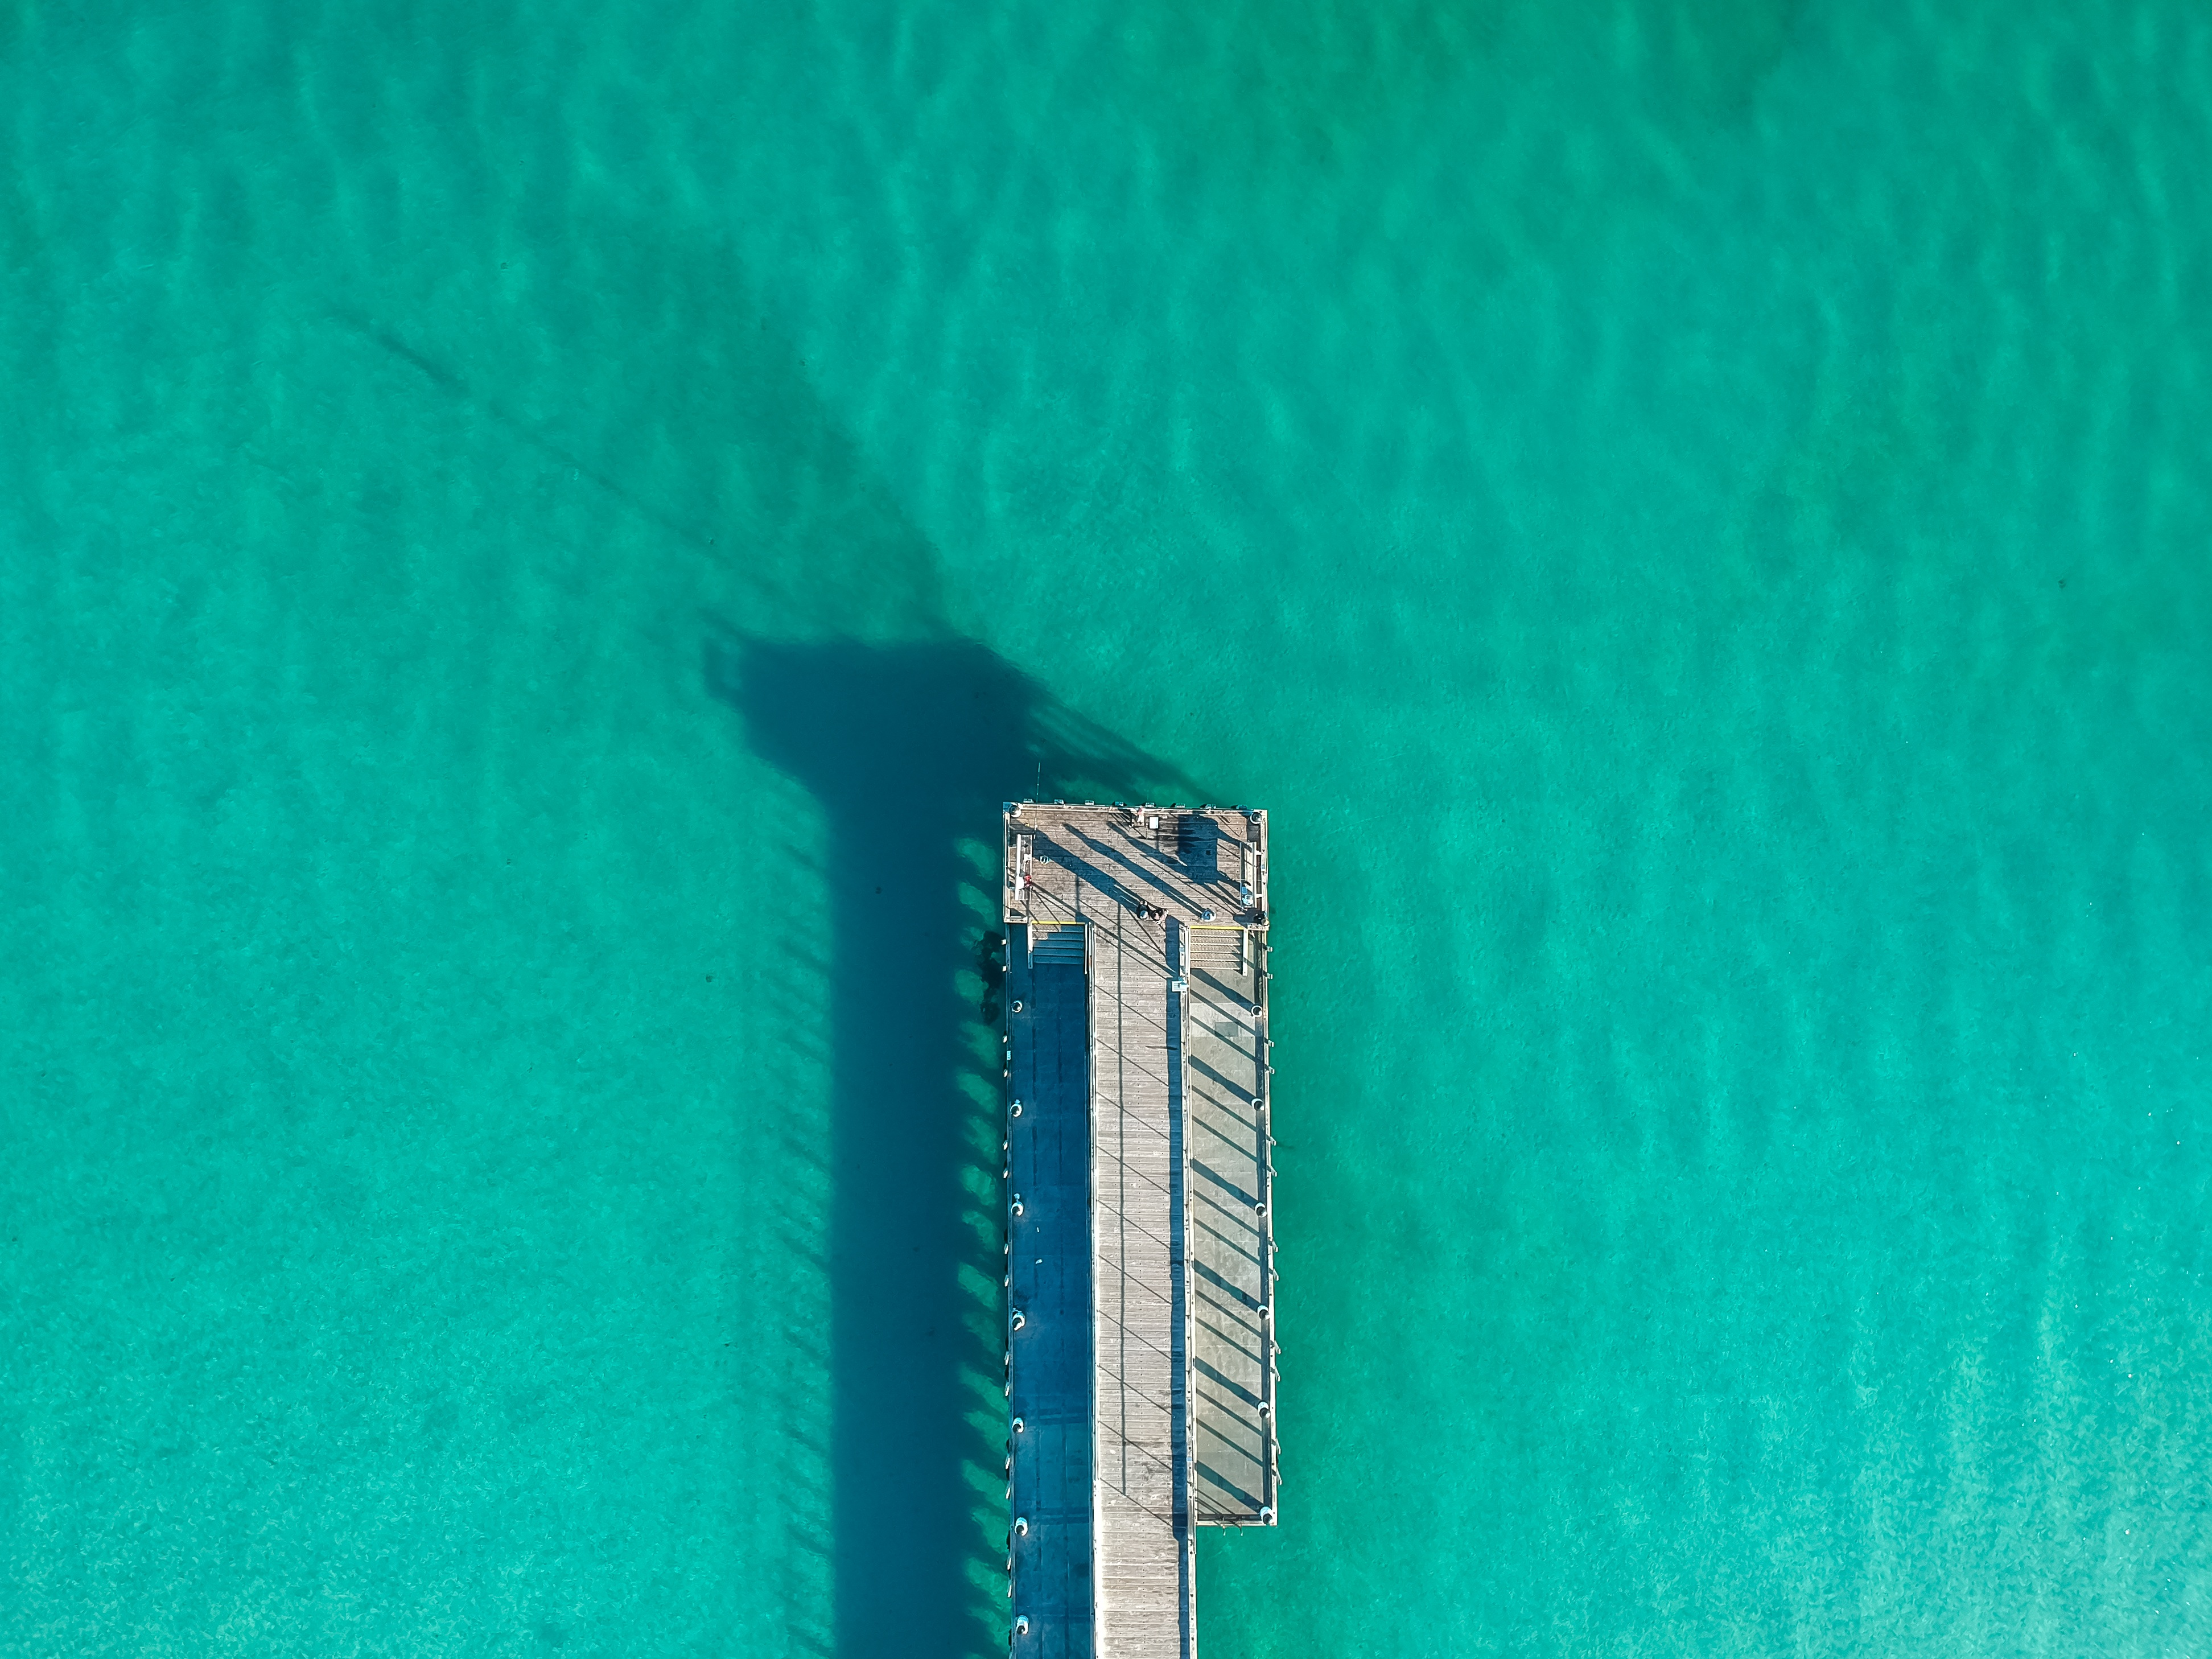 142377 free download Turquoise wallpapers for phone, Minimalism, Berth, Wharf, Ocean, Shadow, View From Above, Surface Turquoise images and screensavers for mobile